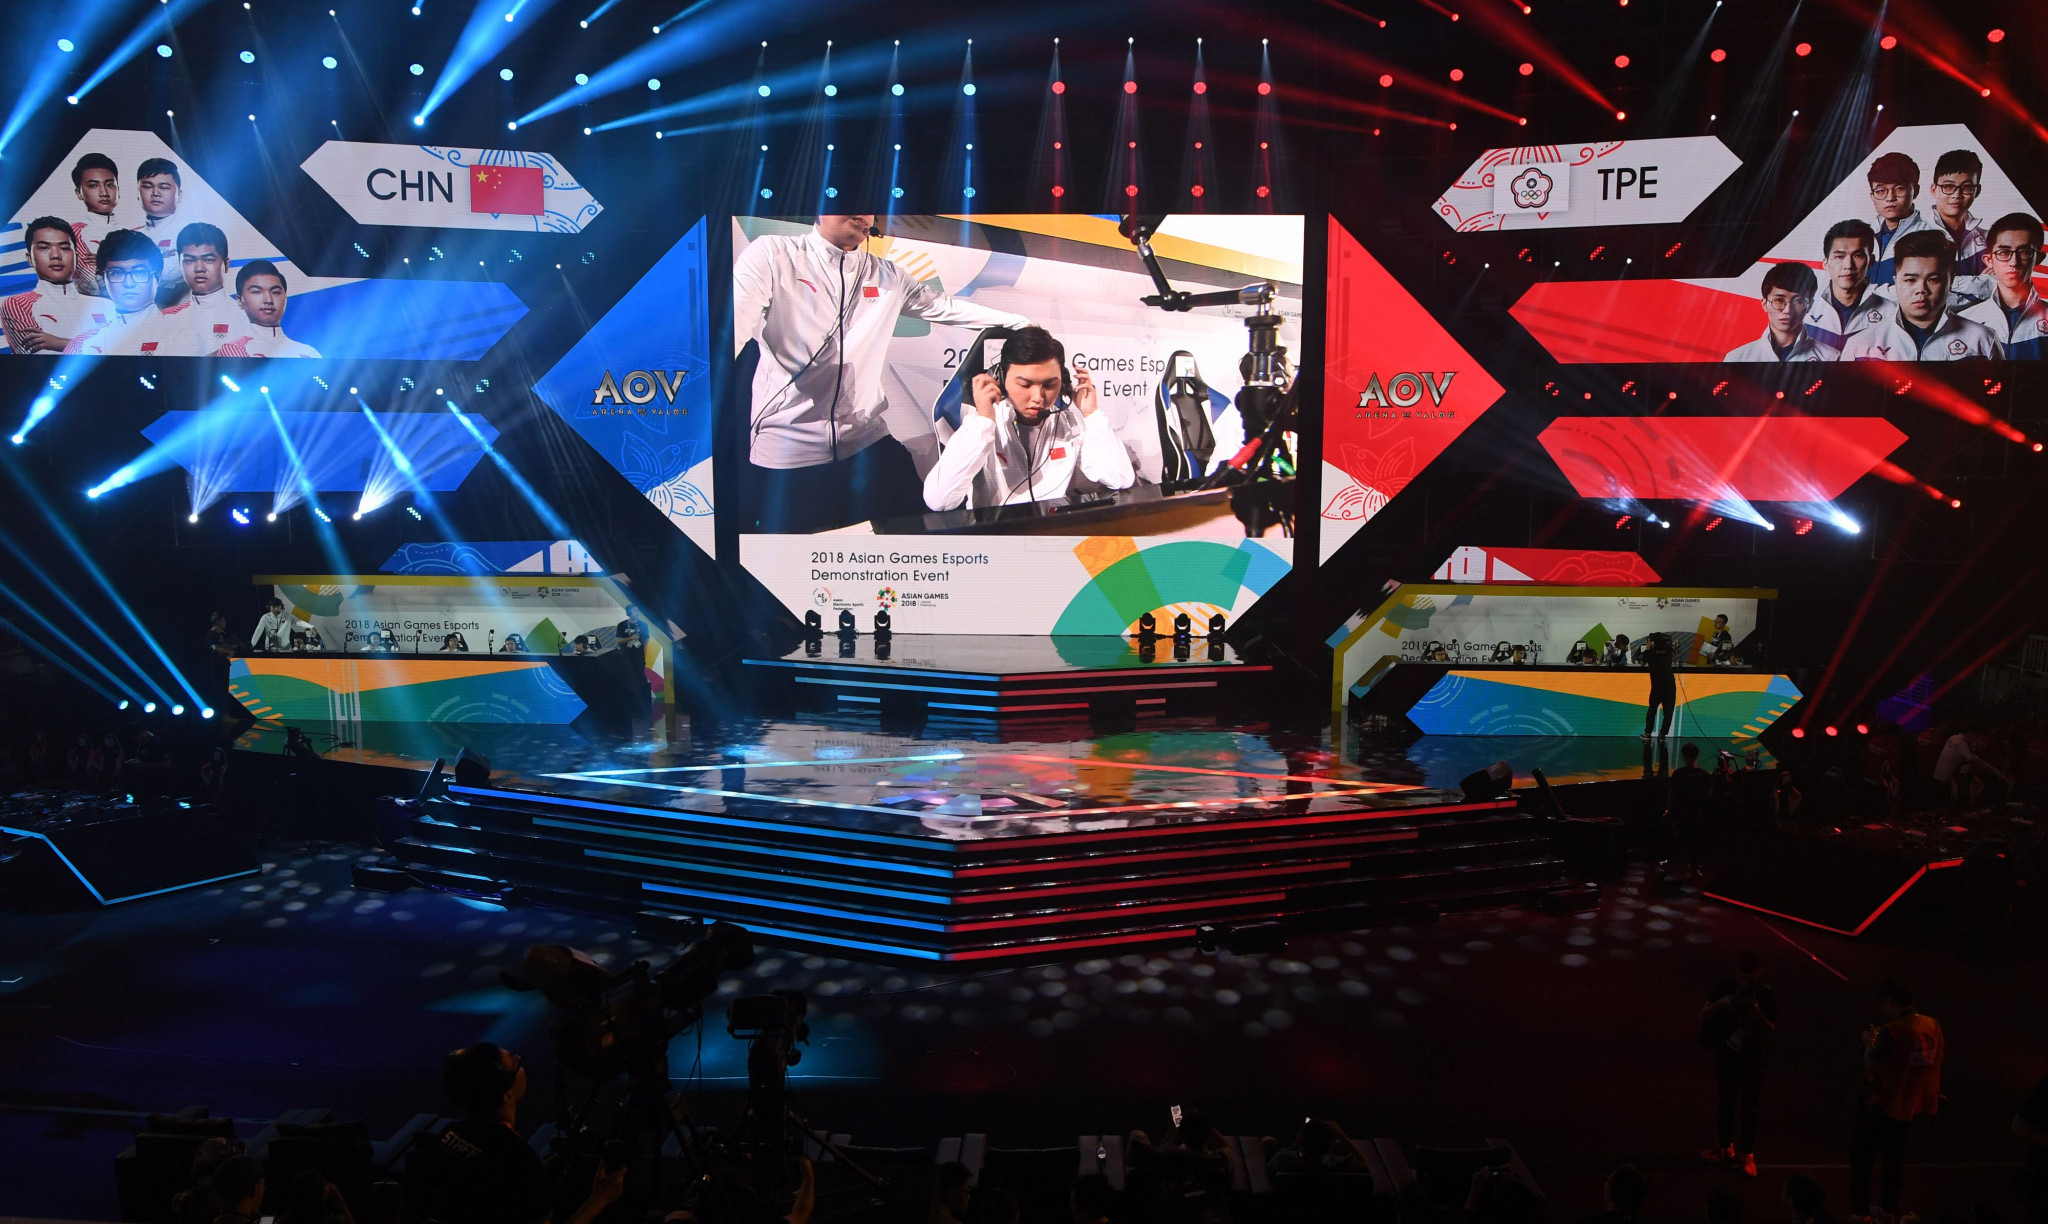 Arena of Valor was among the six titles used when esports featured as a demonstration event at the 2018 Asian Games in Jakarta and Palembang ©Getty Images